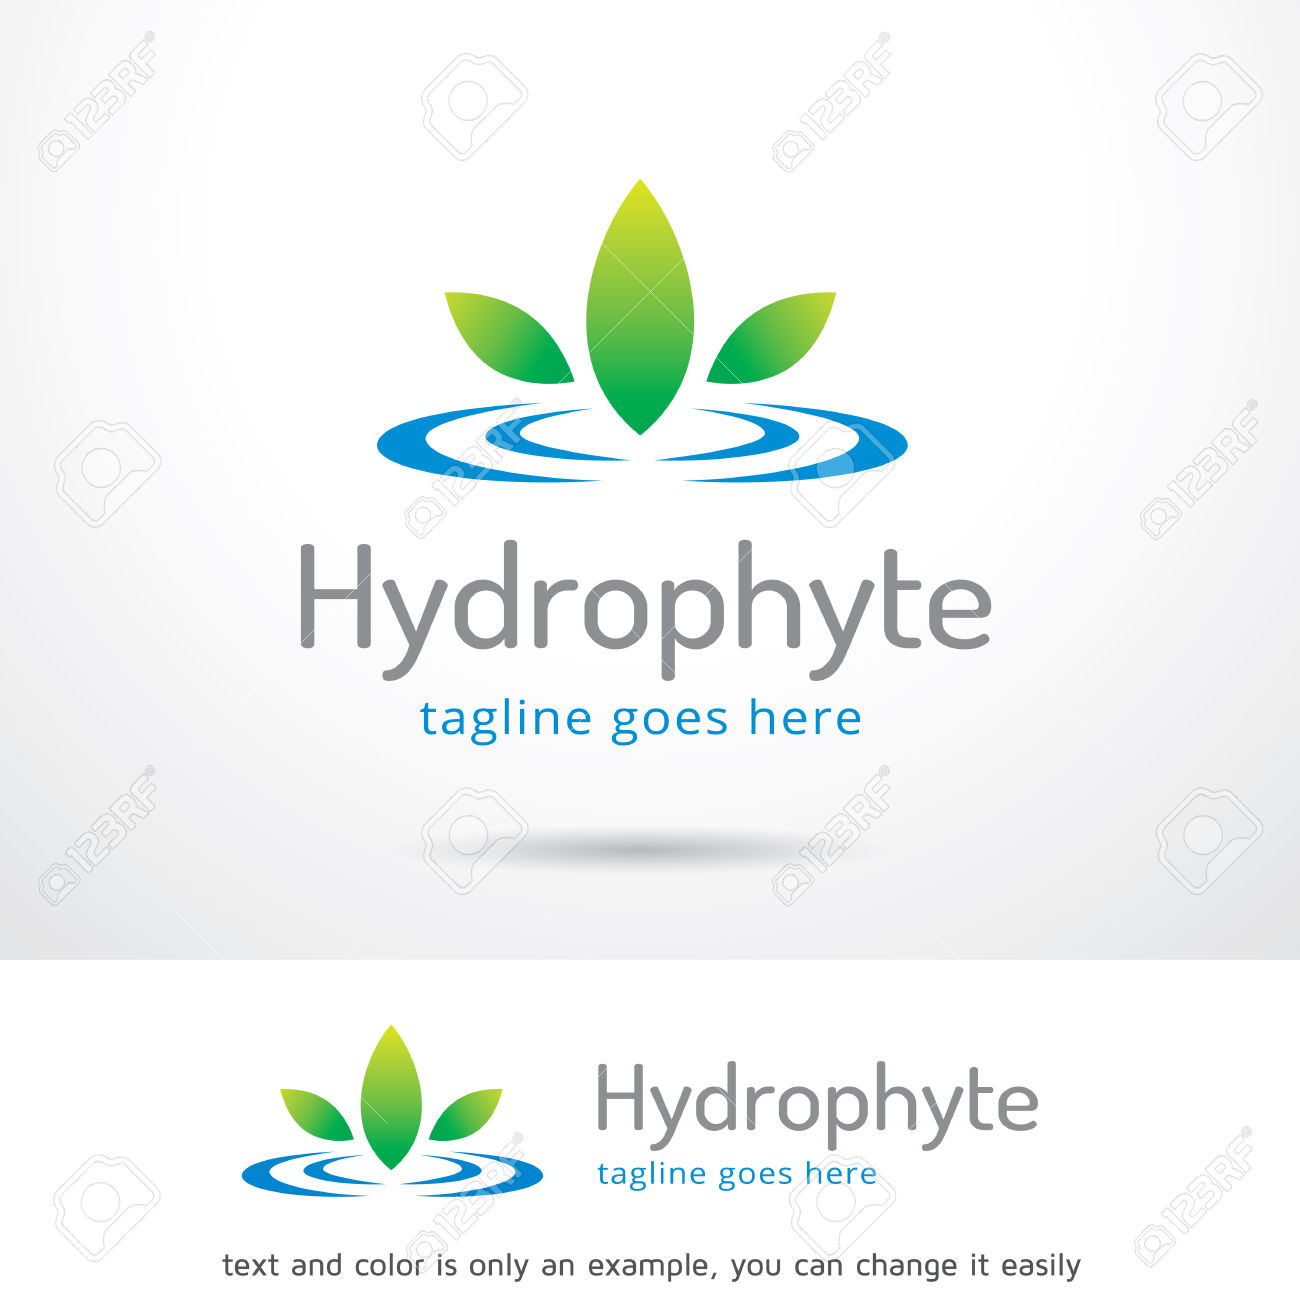 Hydrophyte Template Design Vector Royalty Free Cliparts, Vectors.